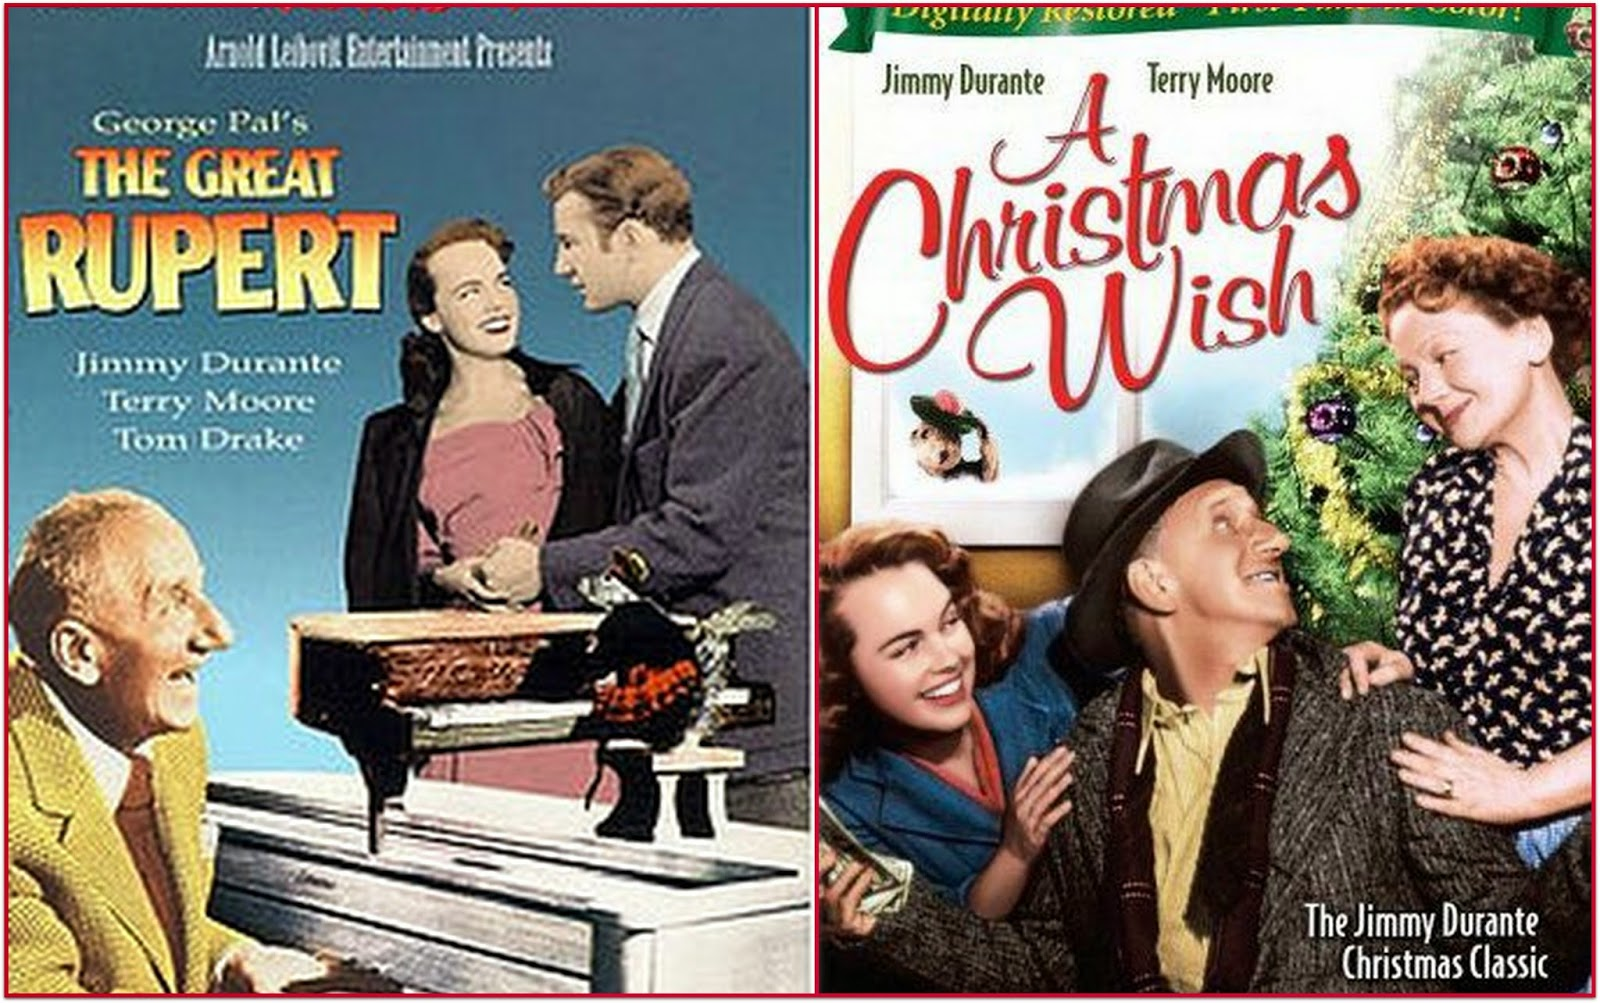 like the 1994 mixed nuts with steve martin named one of the worst films ever made the 1950 the great rupert re titled a christmas - Steve Martin Christmas Movie